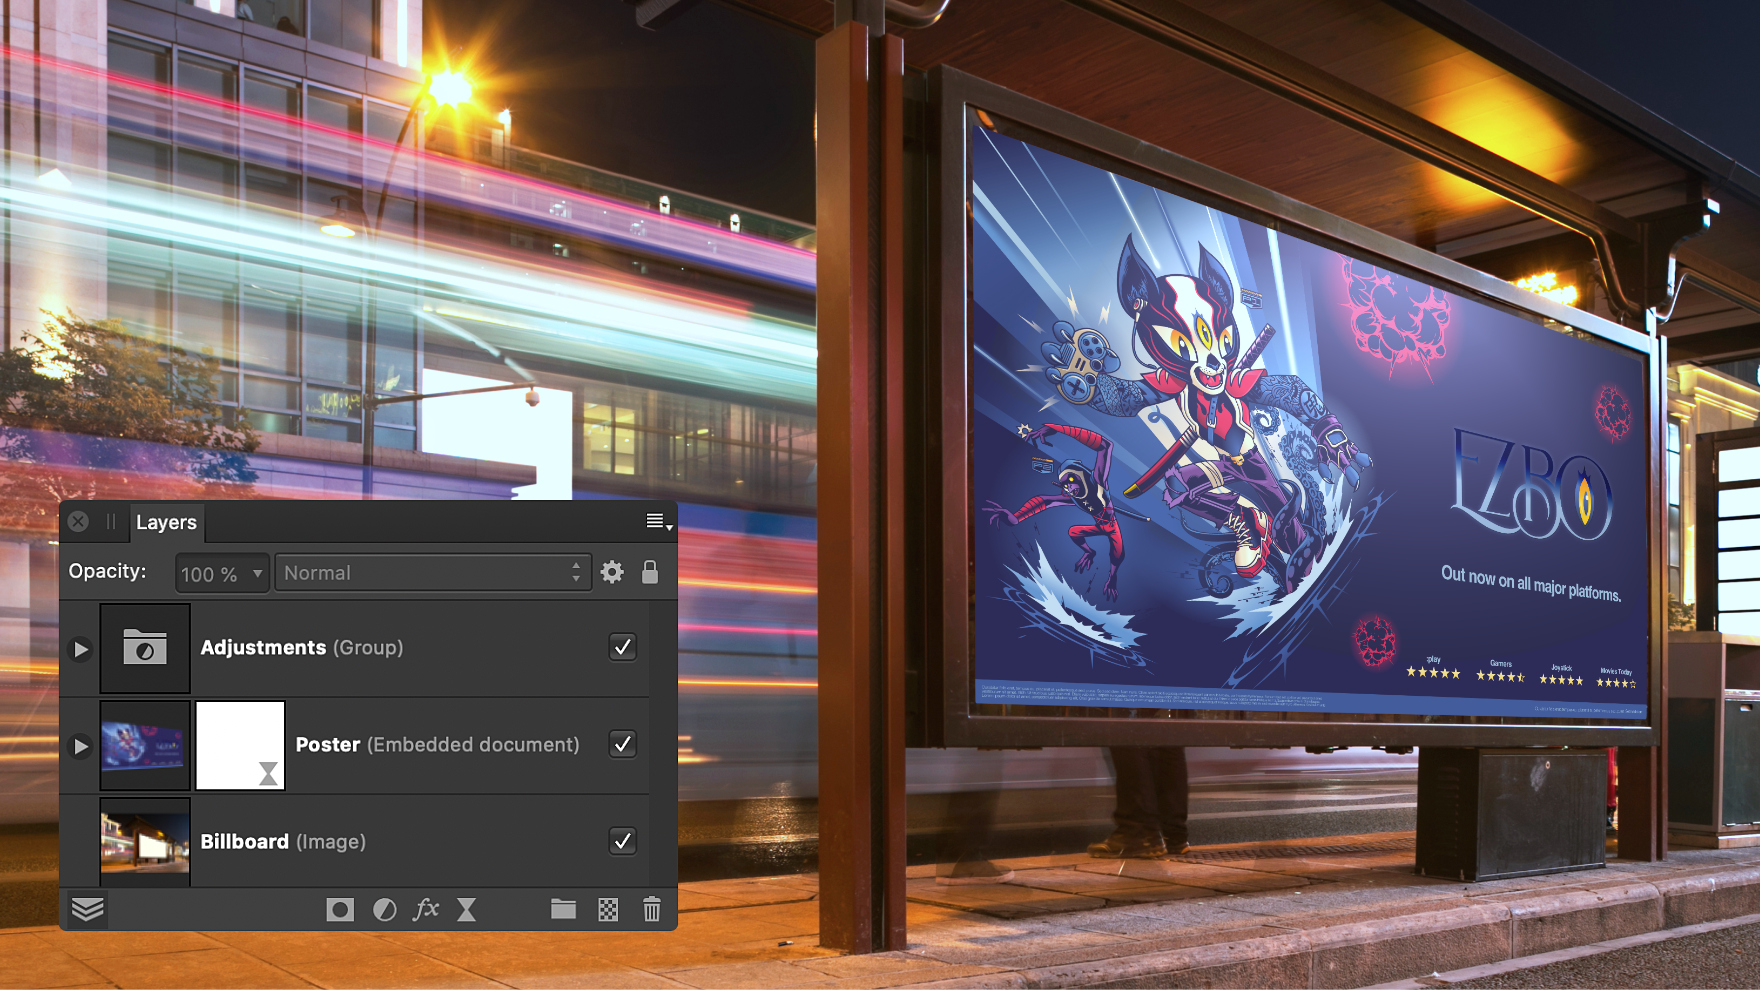 Affinity Photo, Publisher, and Designer updated to version 1.8 - 9to5Mac